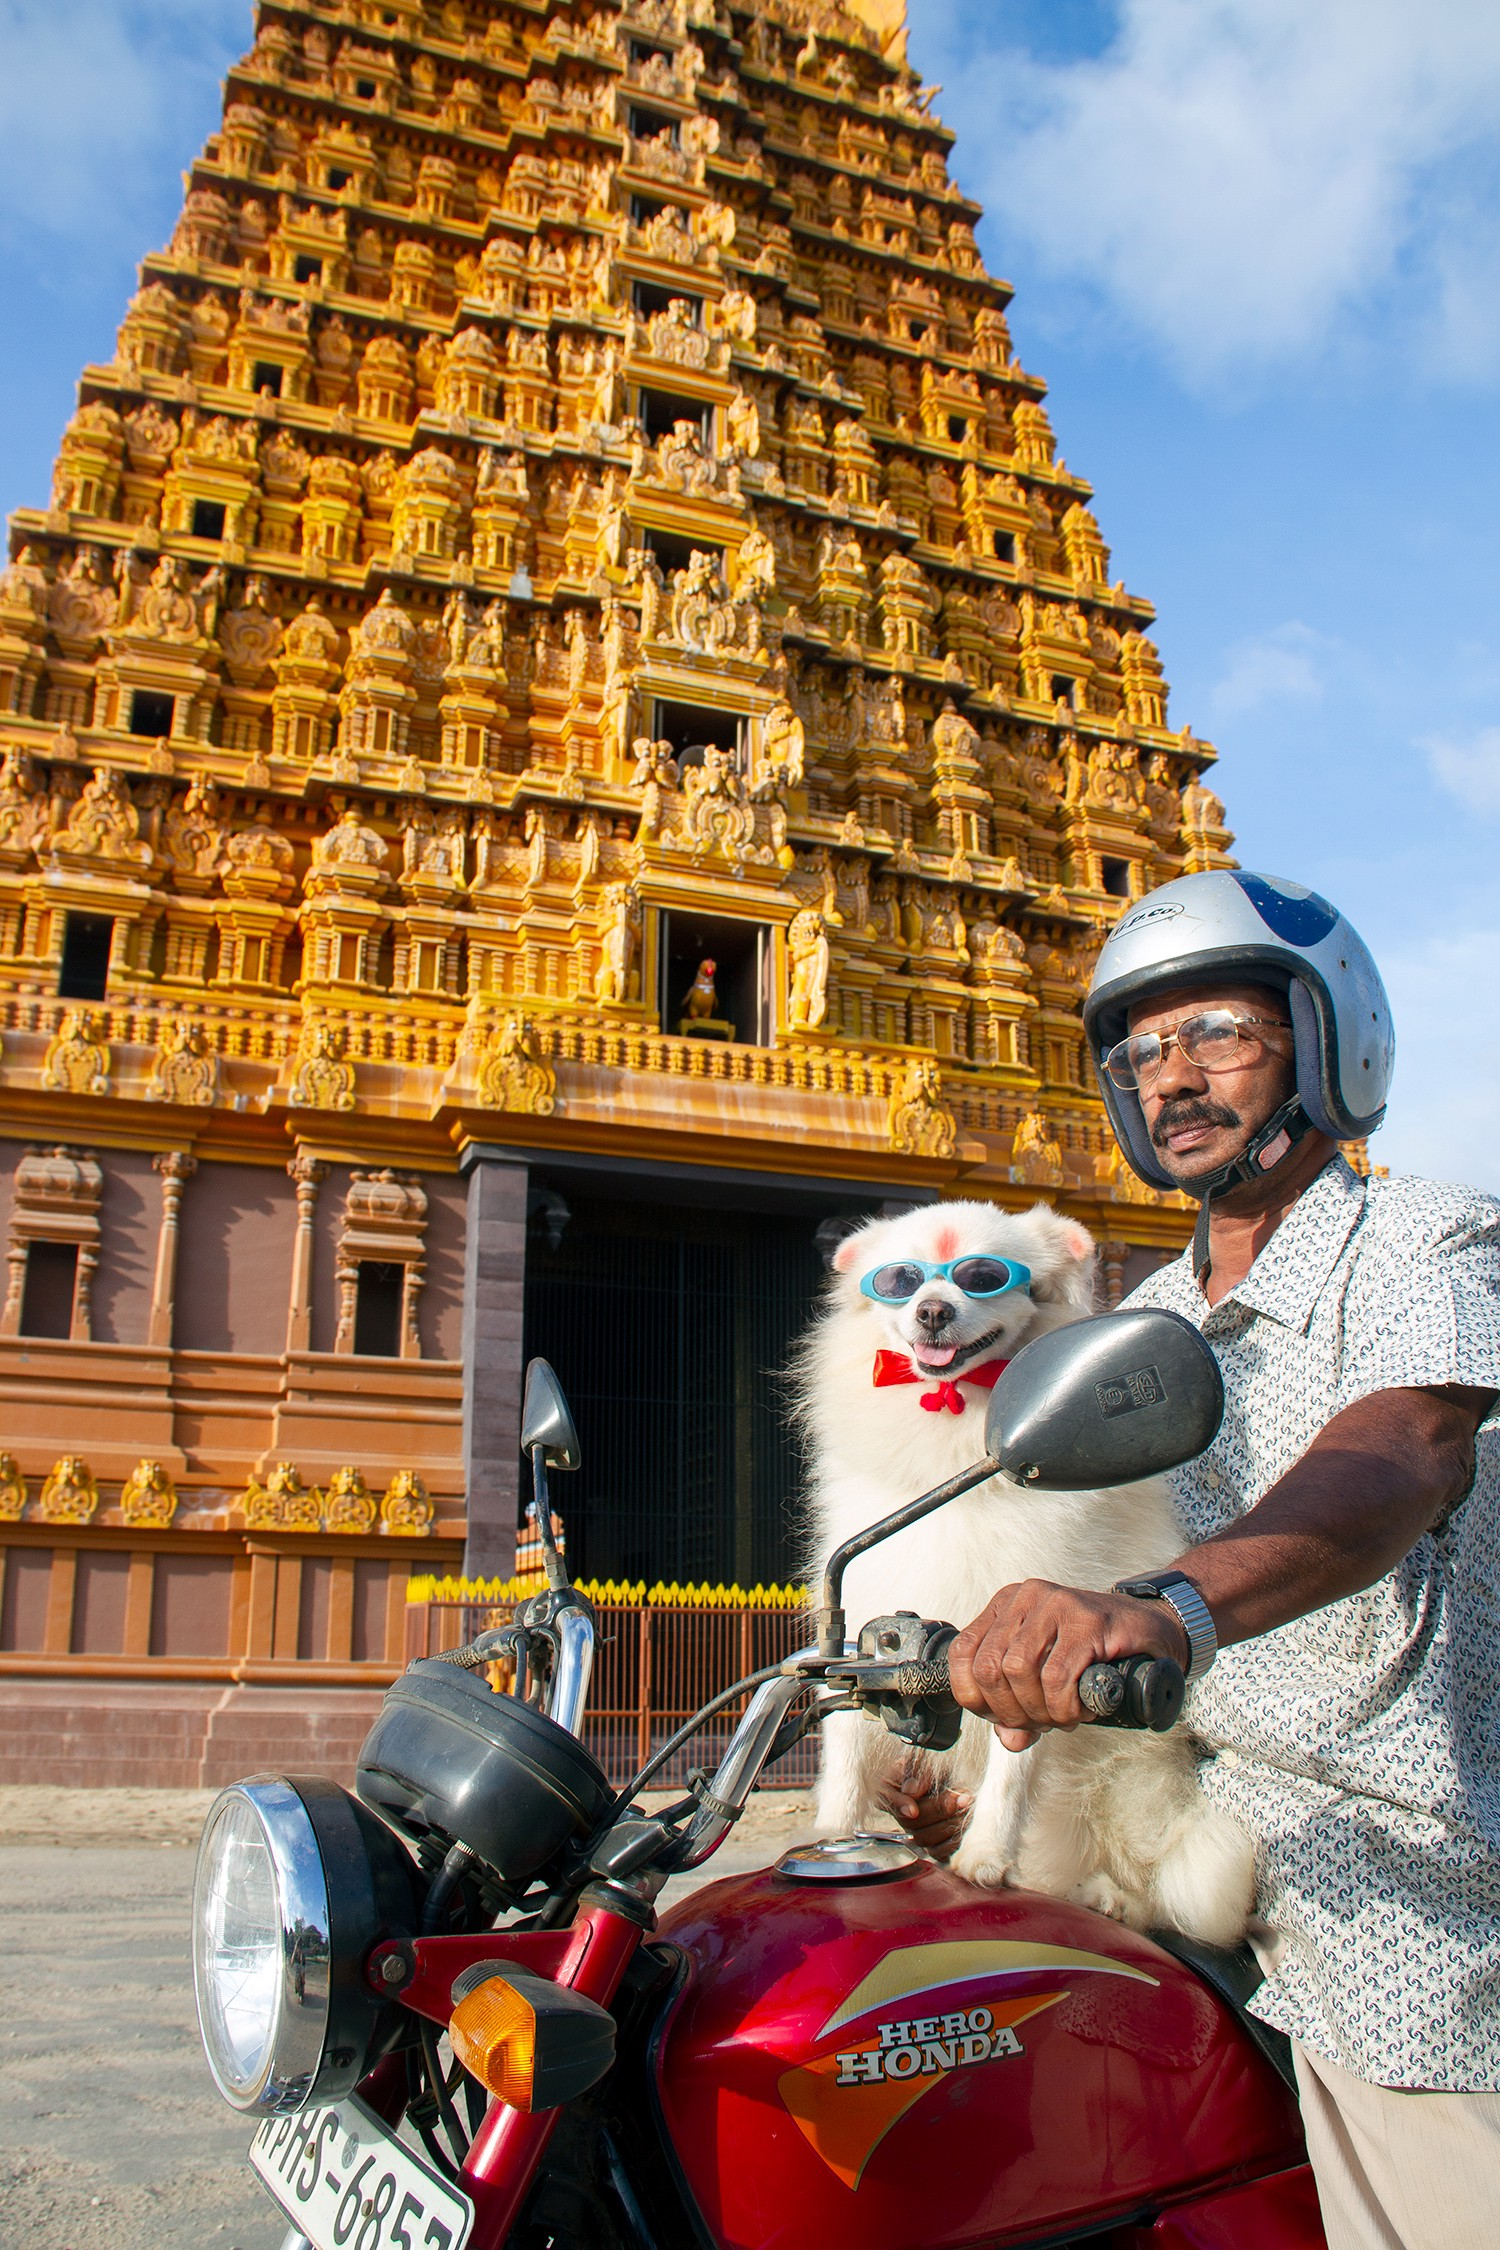 Picture of a temple in Sri Lanka with a man and a dog on front of it, by Jürgen Horn from For91Days.